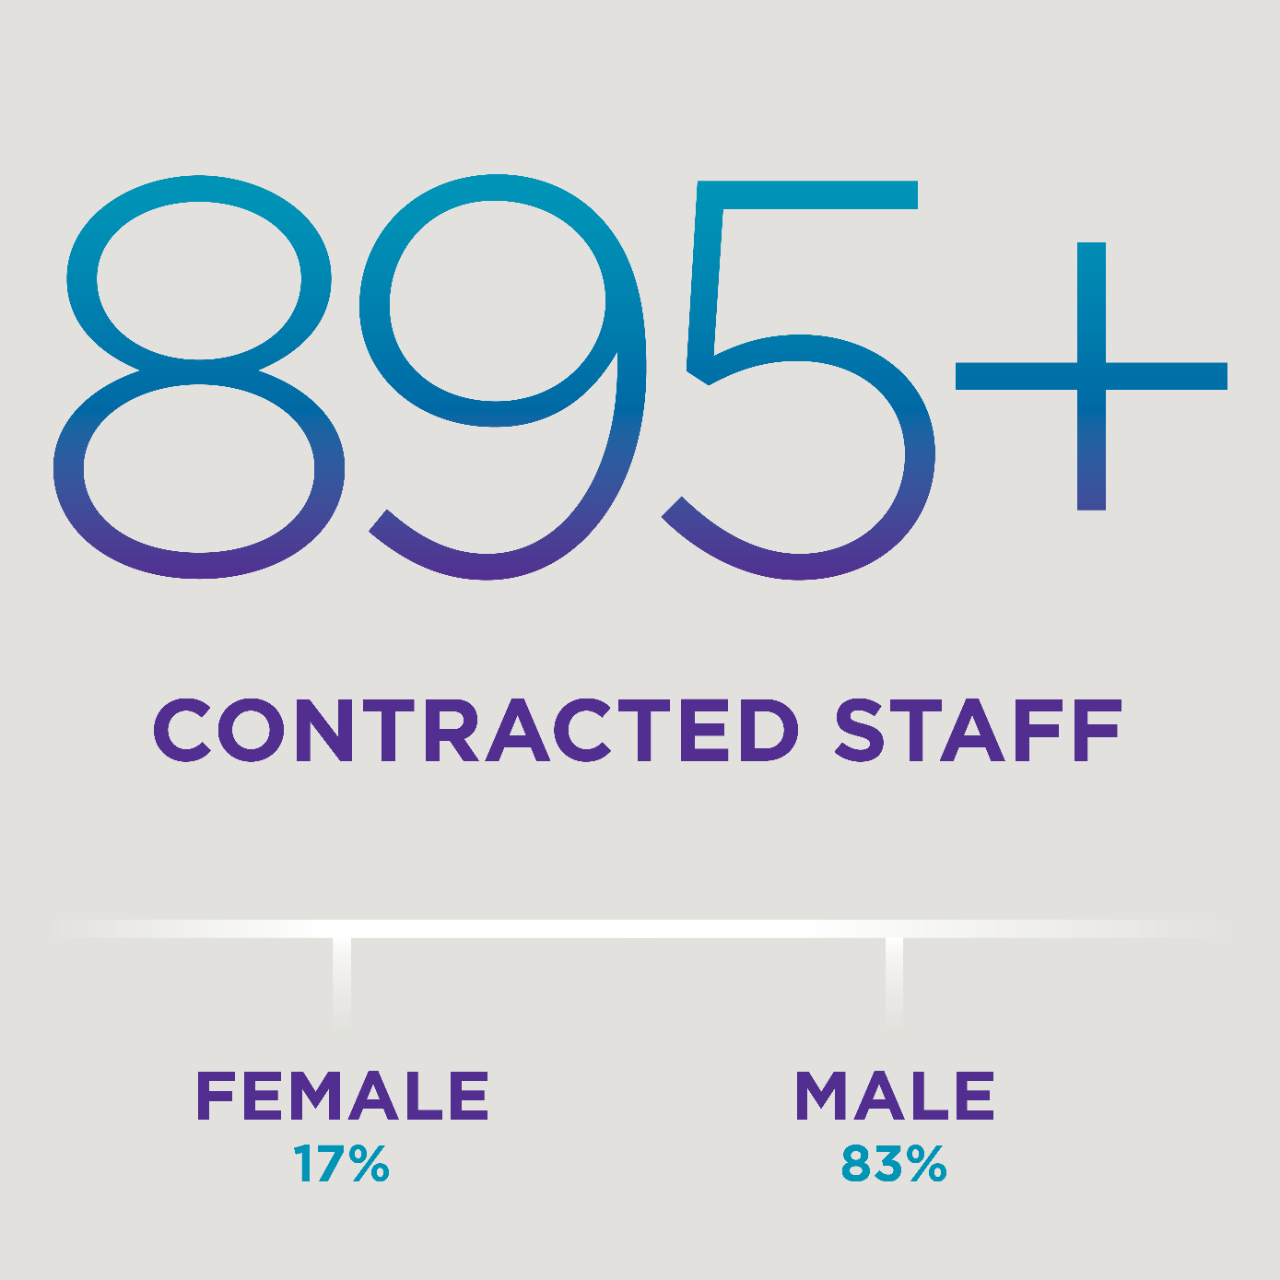 895 + contracted staff; 17% female, 83% male